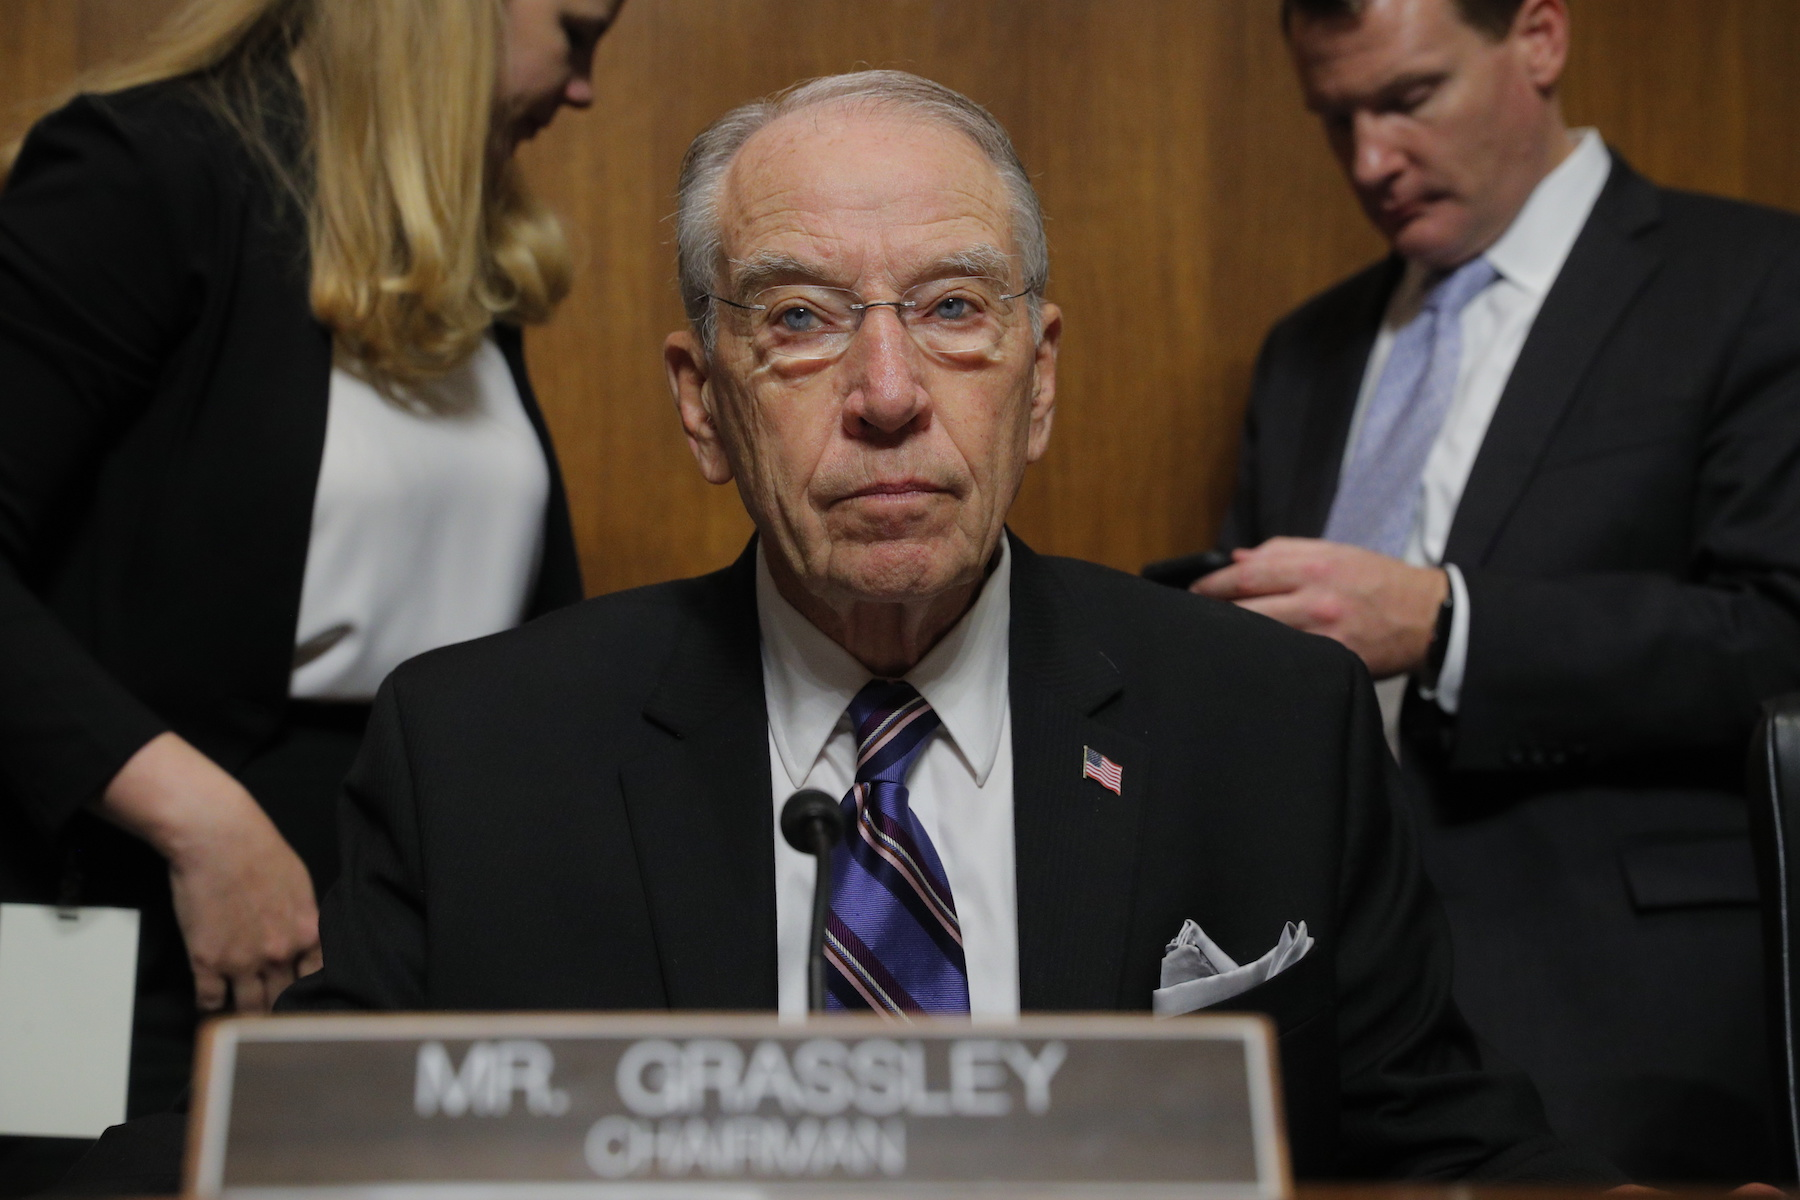 "<div class=""meta image-caption""><div class=""origin-logo origin-image ap""><span>AP</span></div><span class=""caption-text"">Senate Judiciary Committee Chairman Chuck Grassley, R-Iowa, looks on during a break in a confirmation hearing of the Senate Judiciary Committee, Thursday, Sept. 27, 2018. (Jim Bourg/Pool Image via AP)</span></div>"